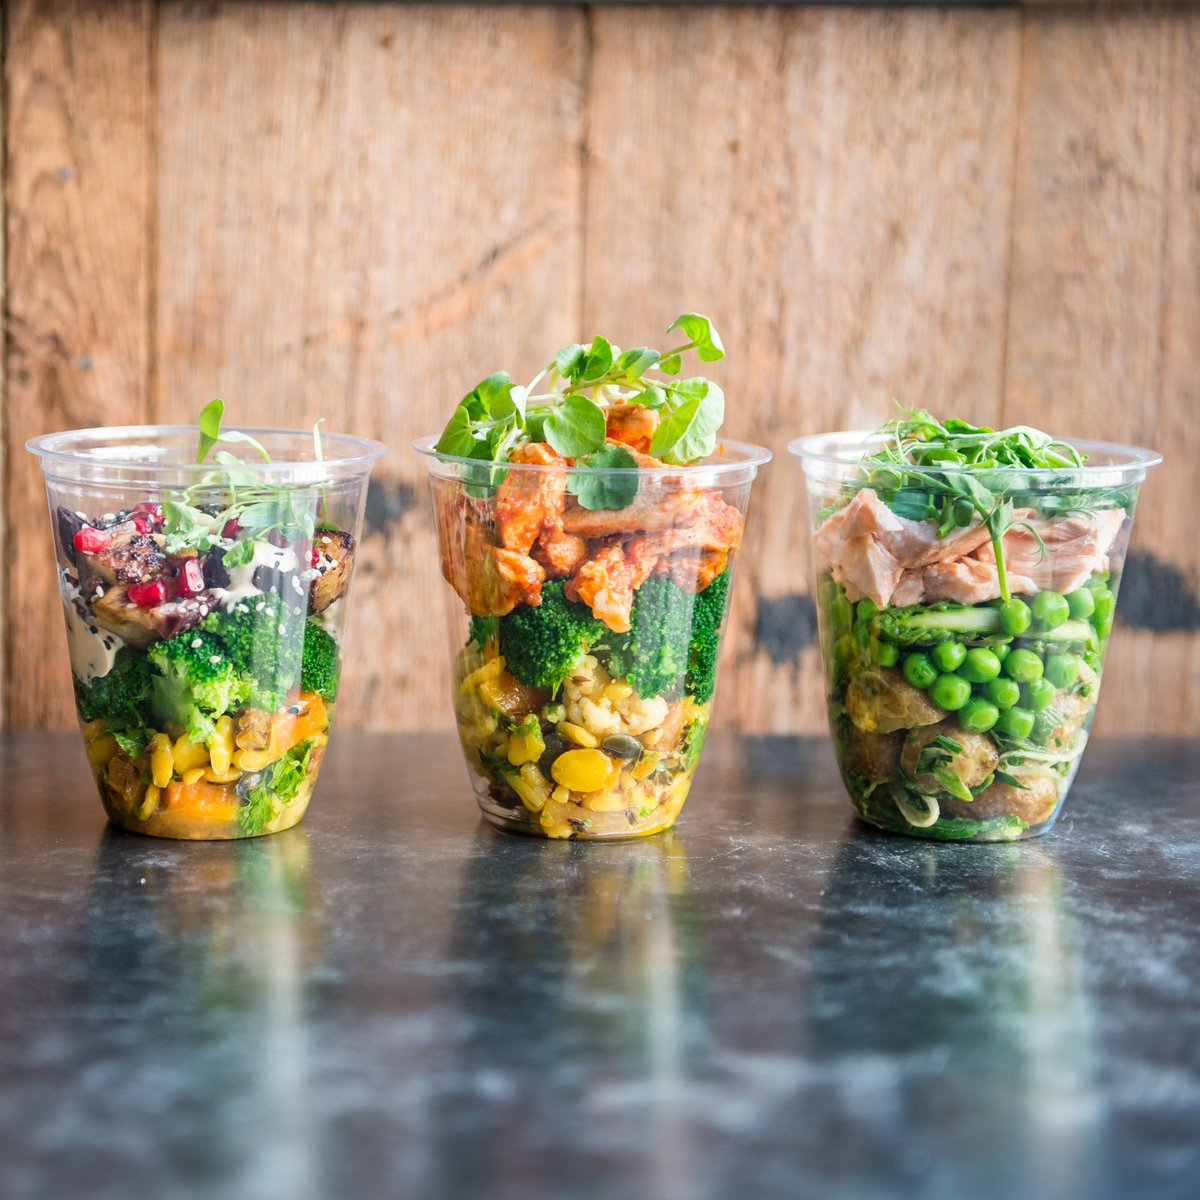 Farmstand London's Best Healthy Food with Deliveroo